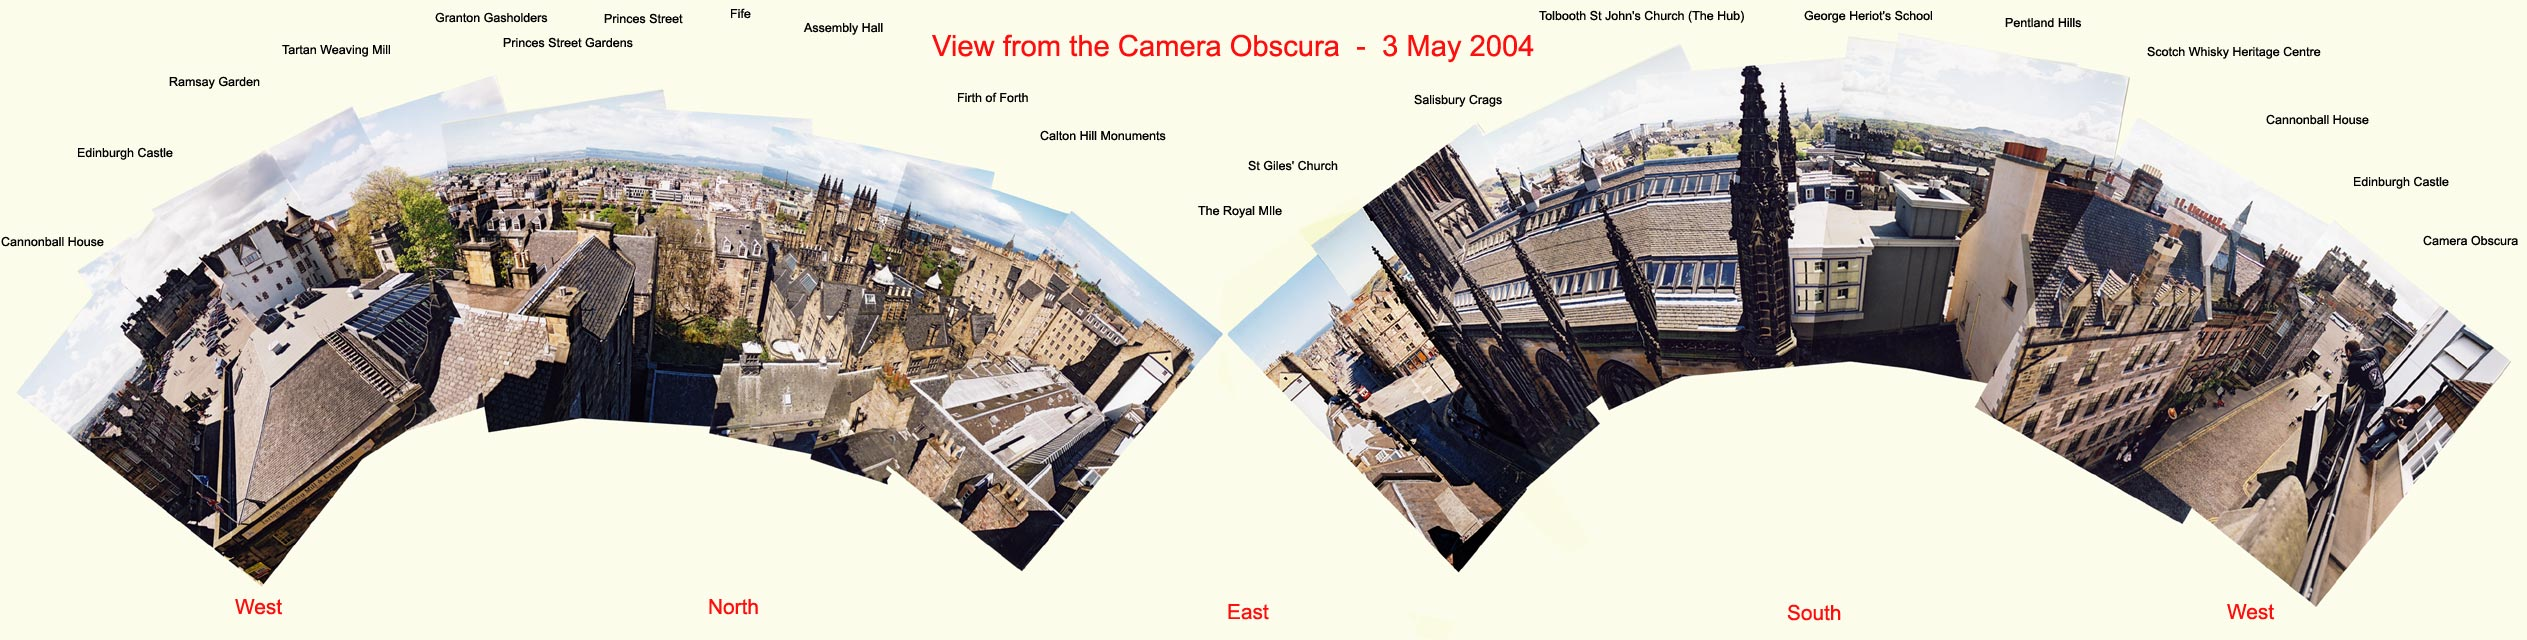 Panoramic View of Edinburgh from the Camera Obscura